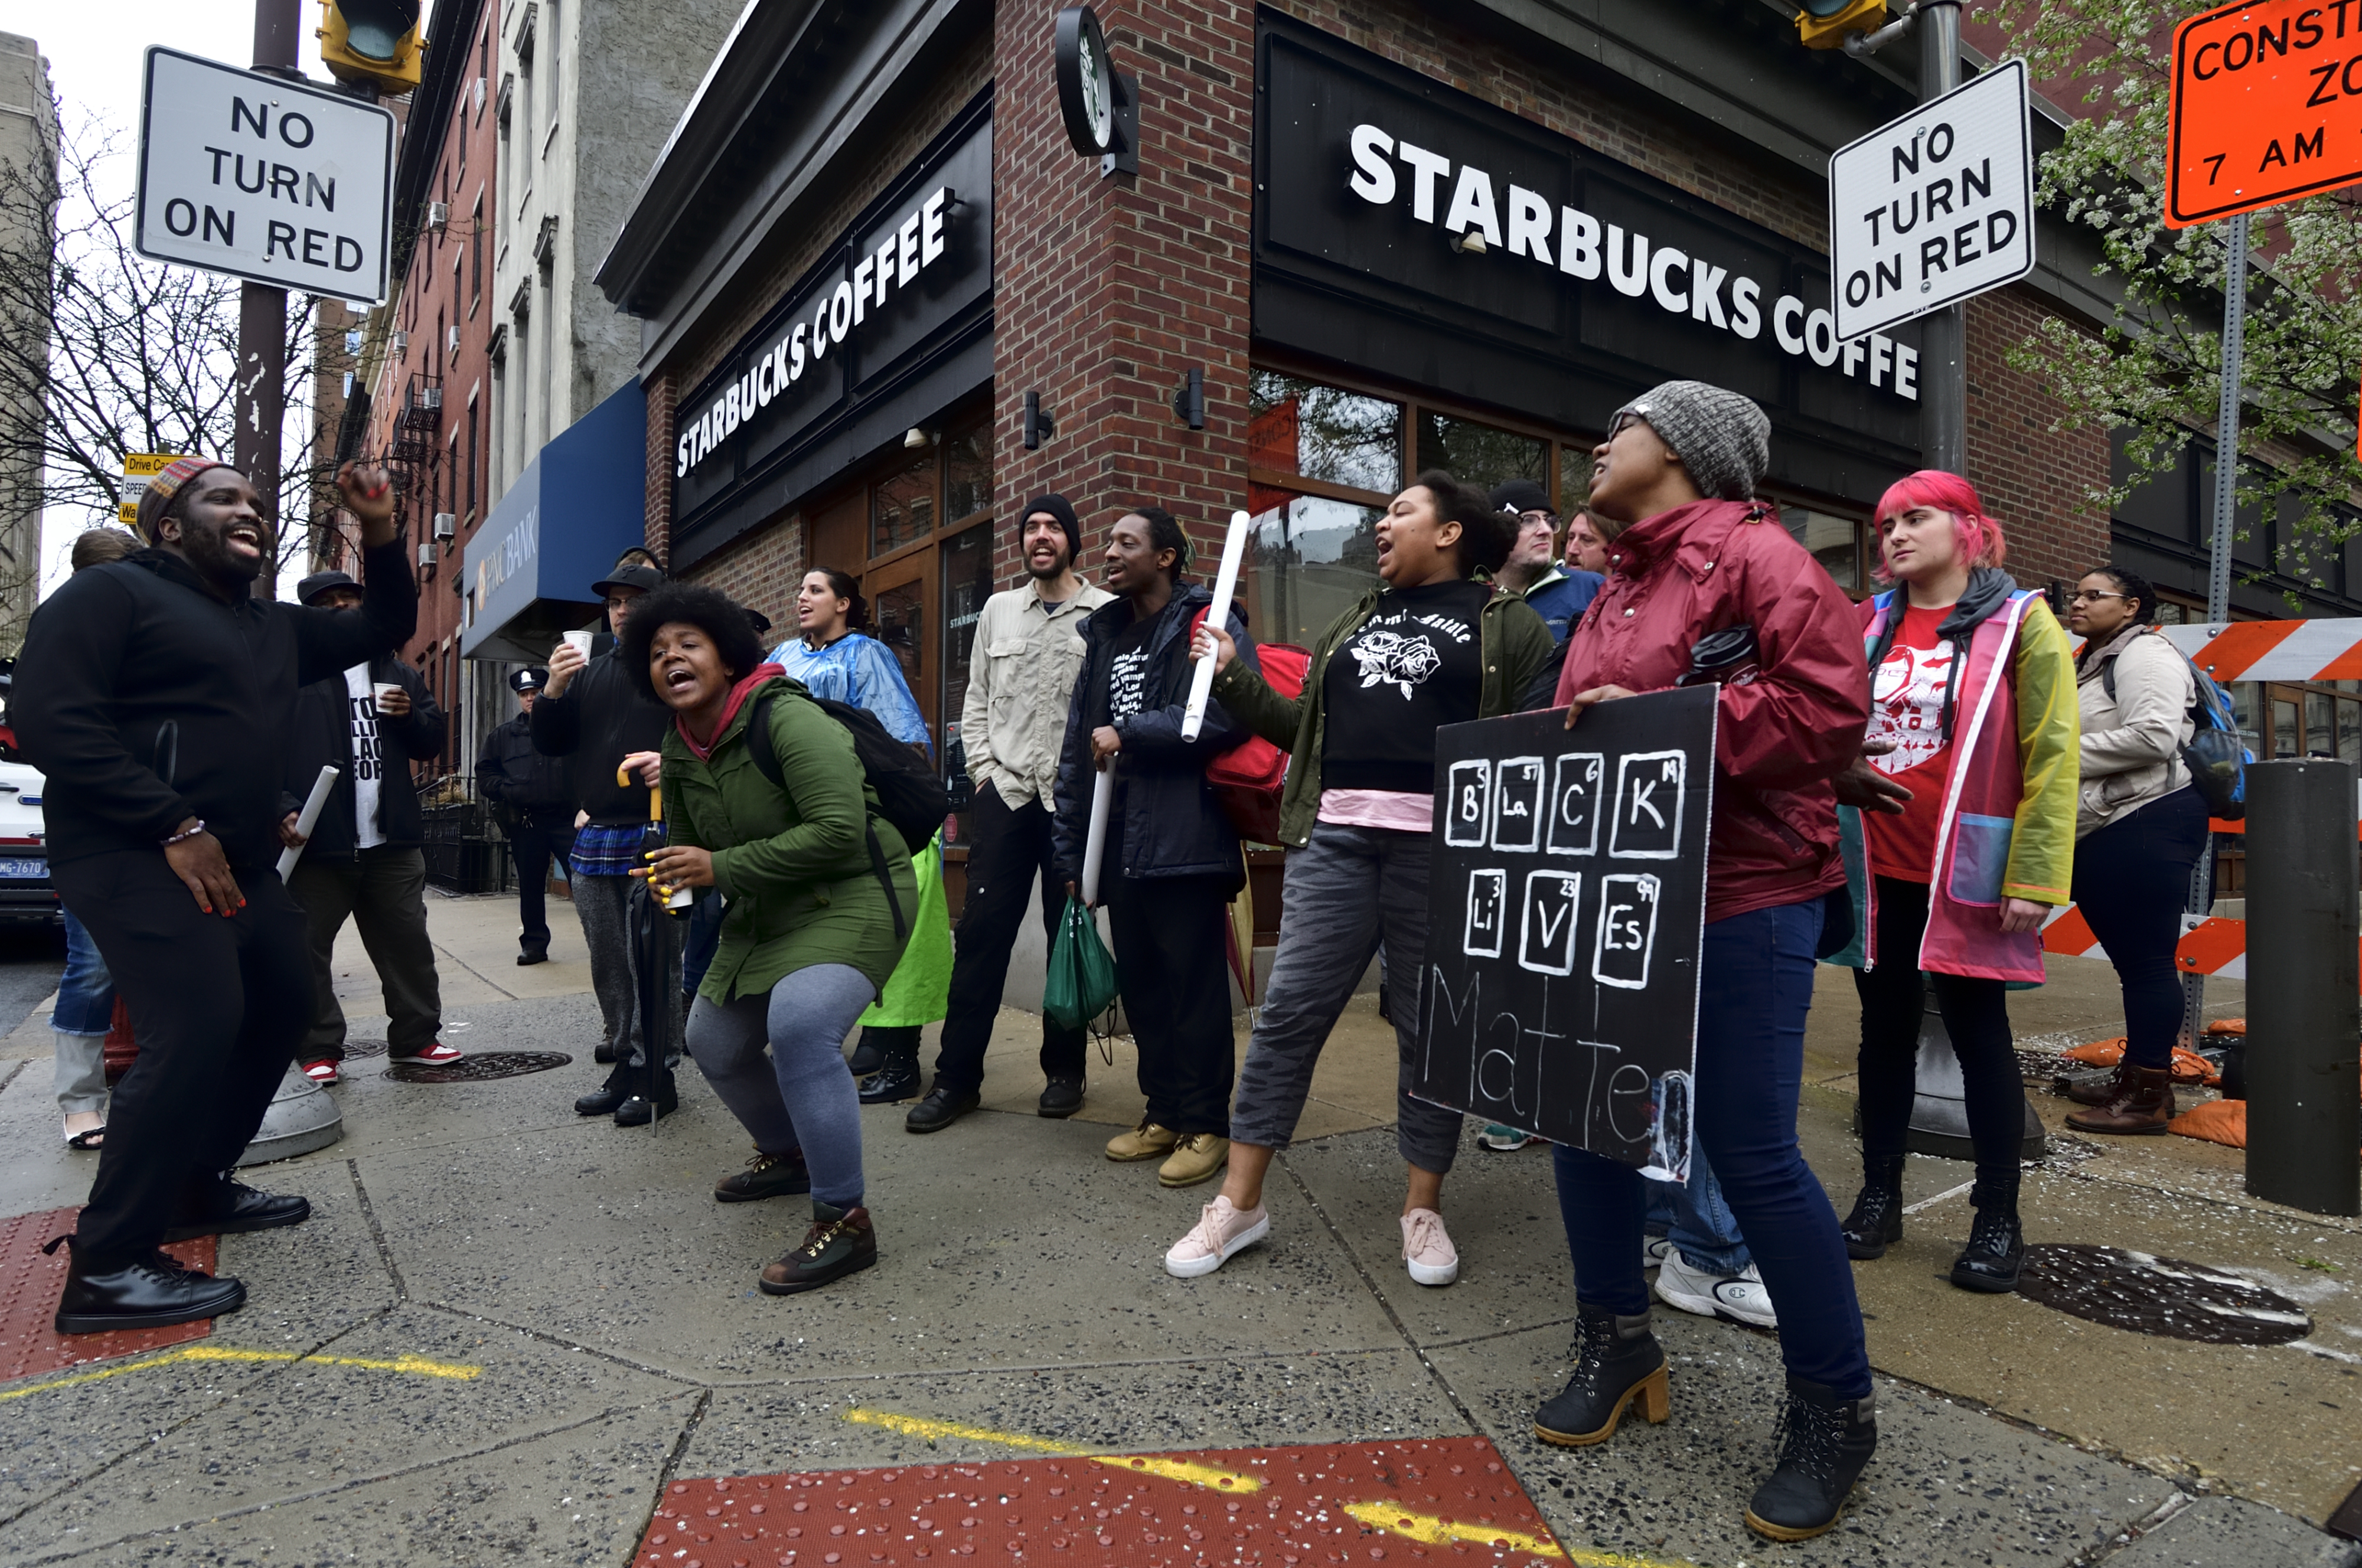 Protesters march past the Starbucks in Philadelphia's Center City, where two black men were arrested for loitering